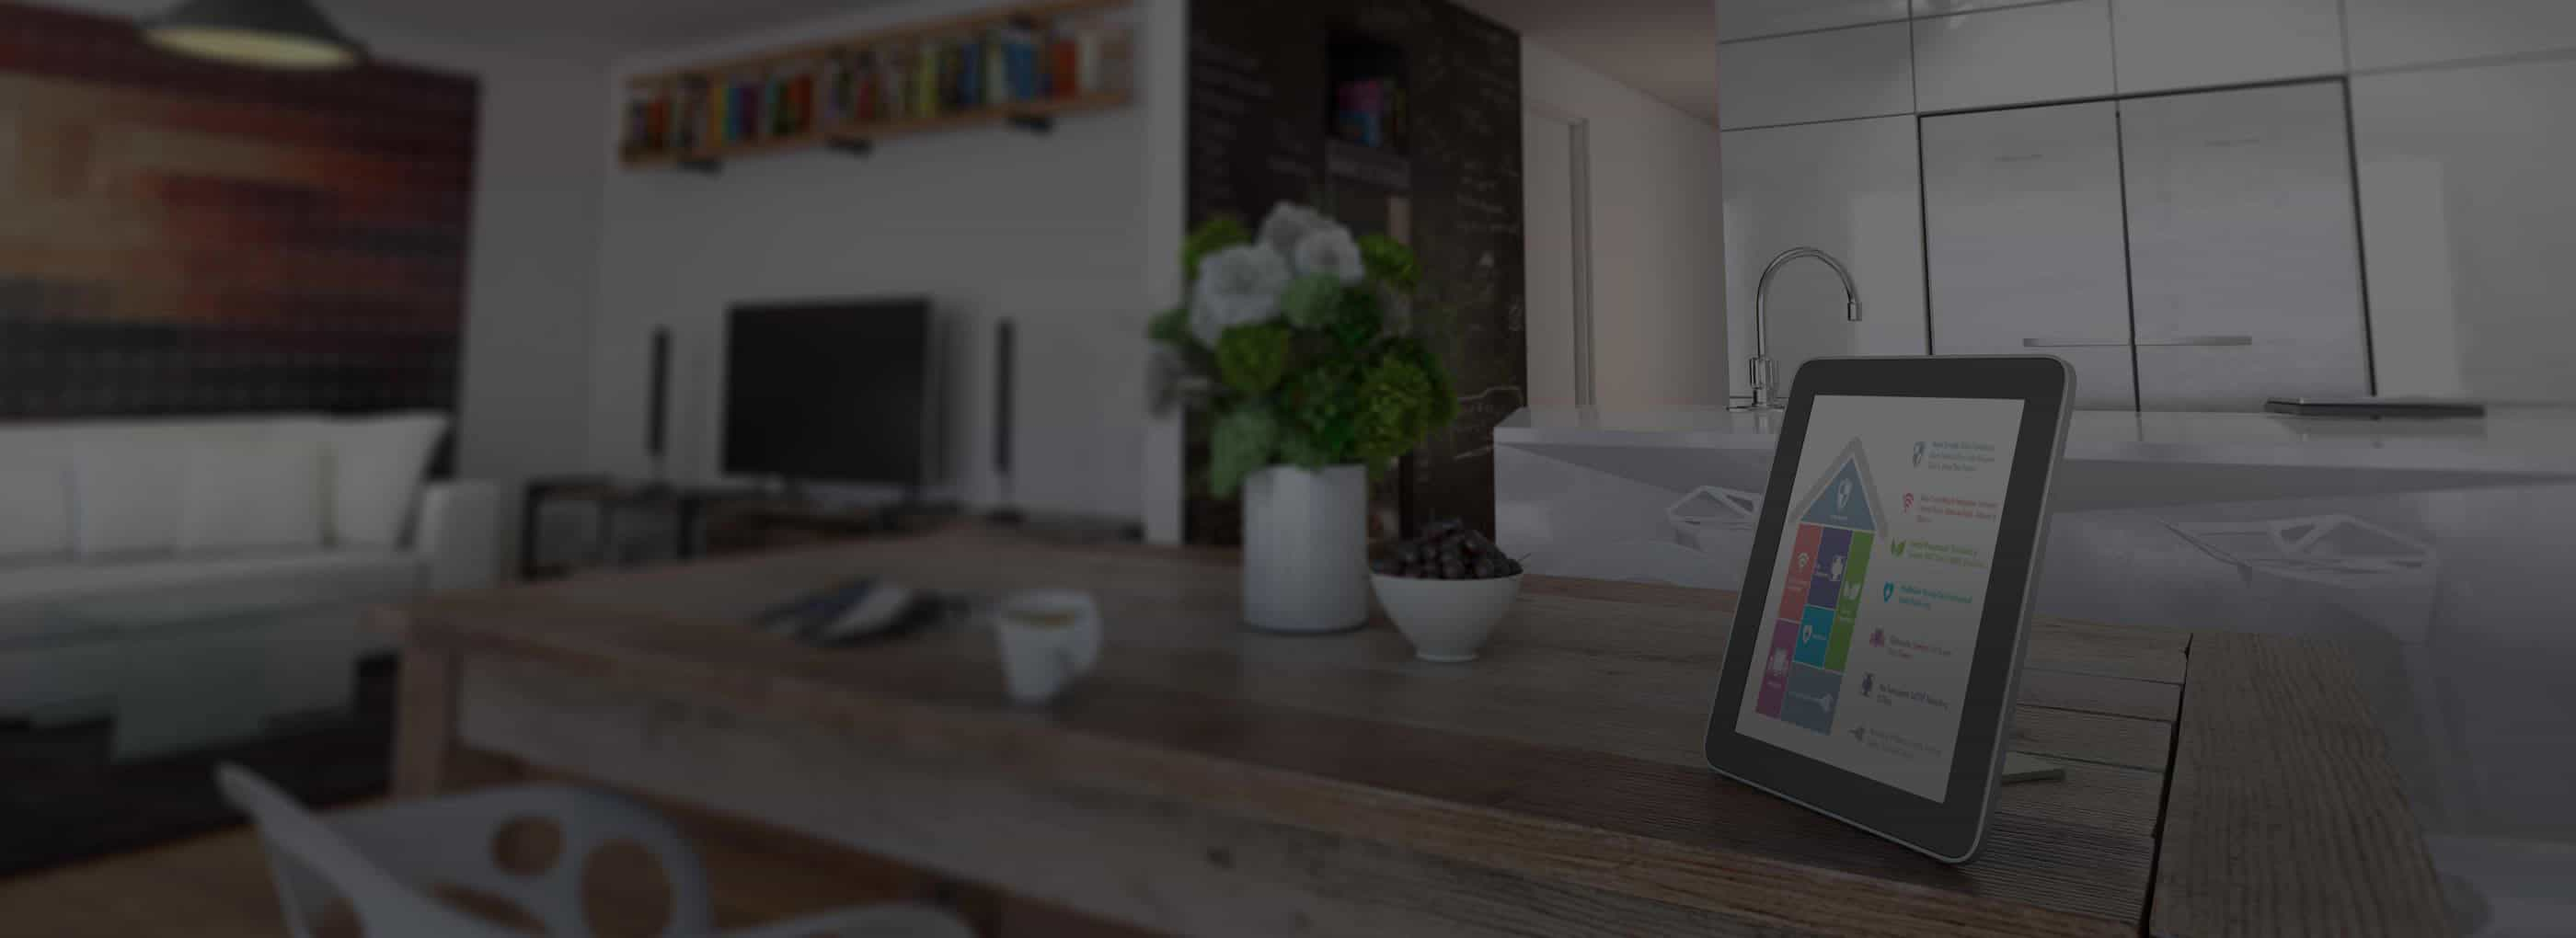 Best Self Monitored Home Security System of 2019 | Non Monitored Safety